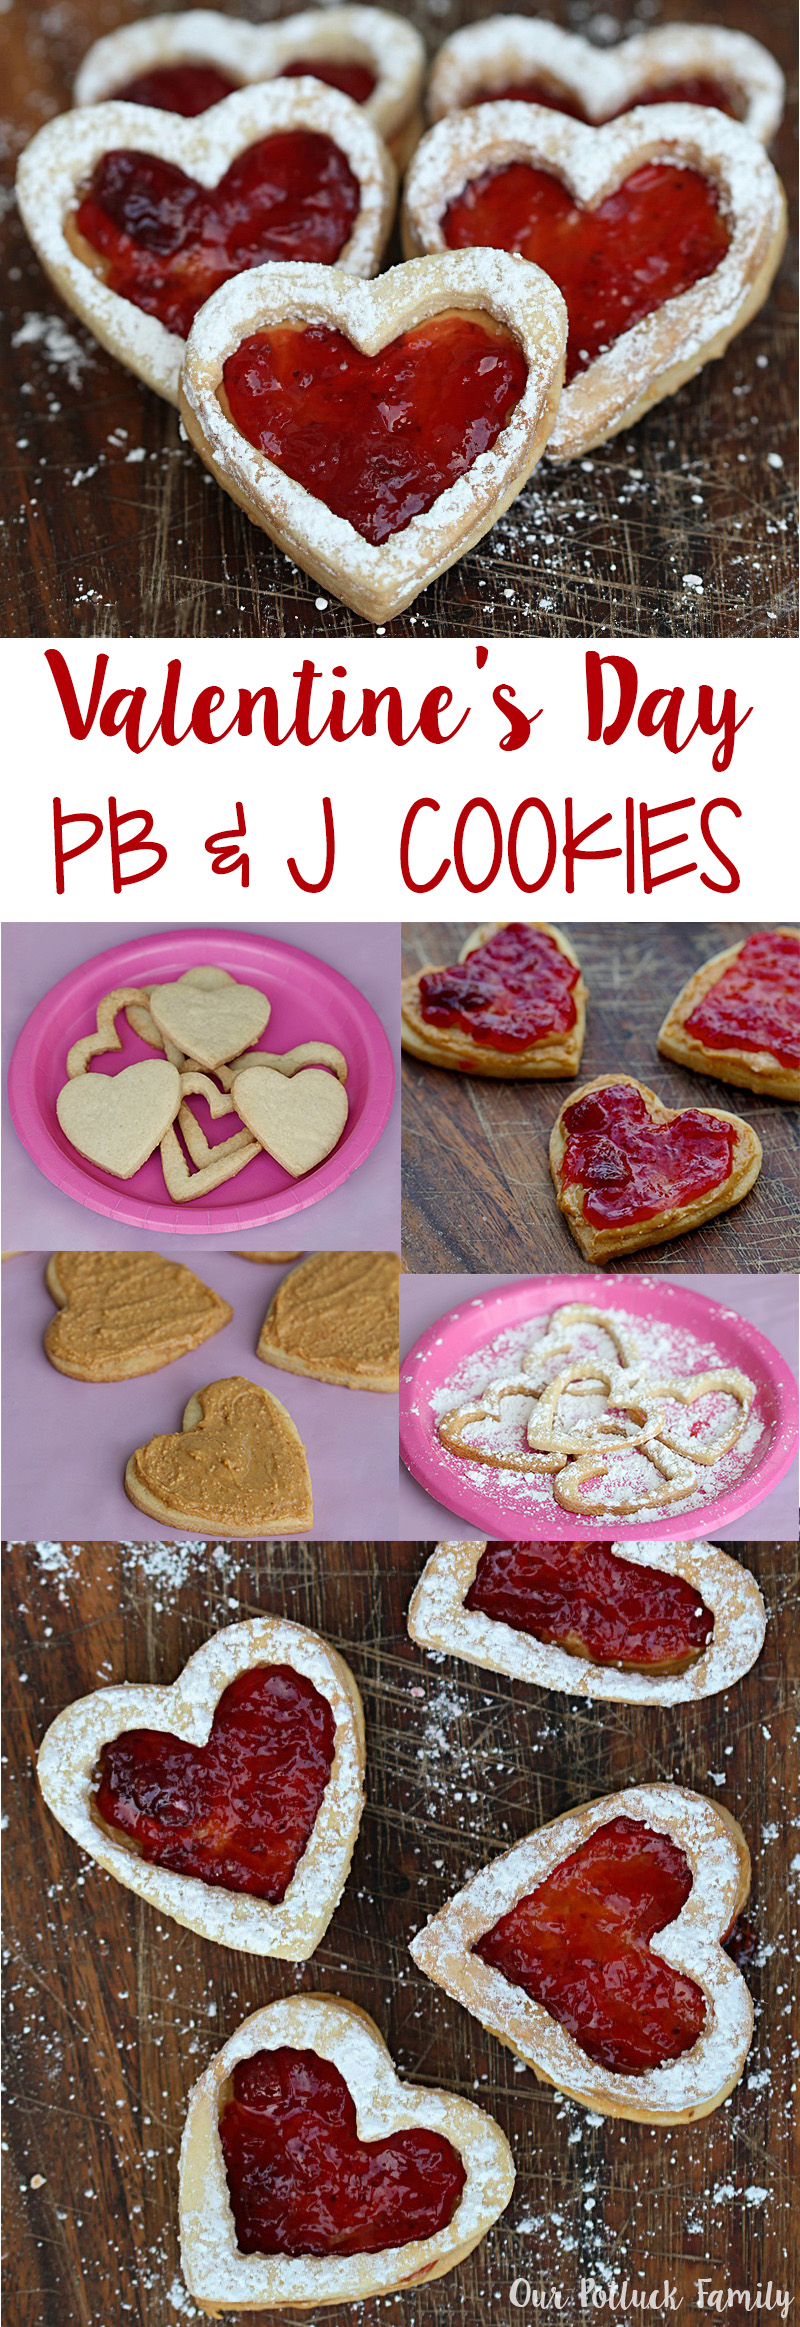 PB & J cookies for Valentine's Day